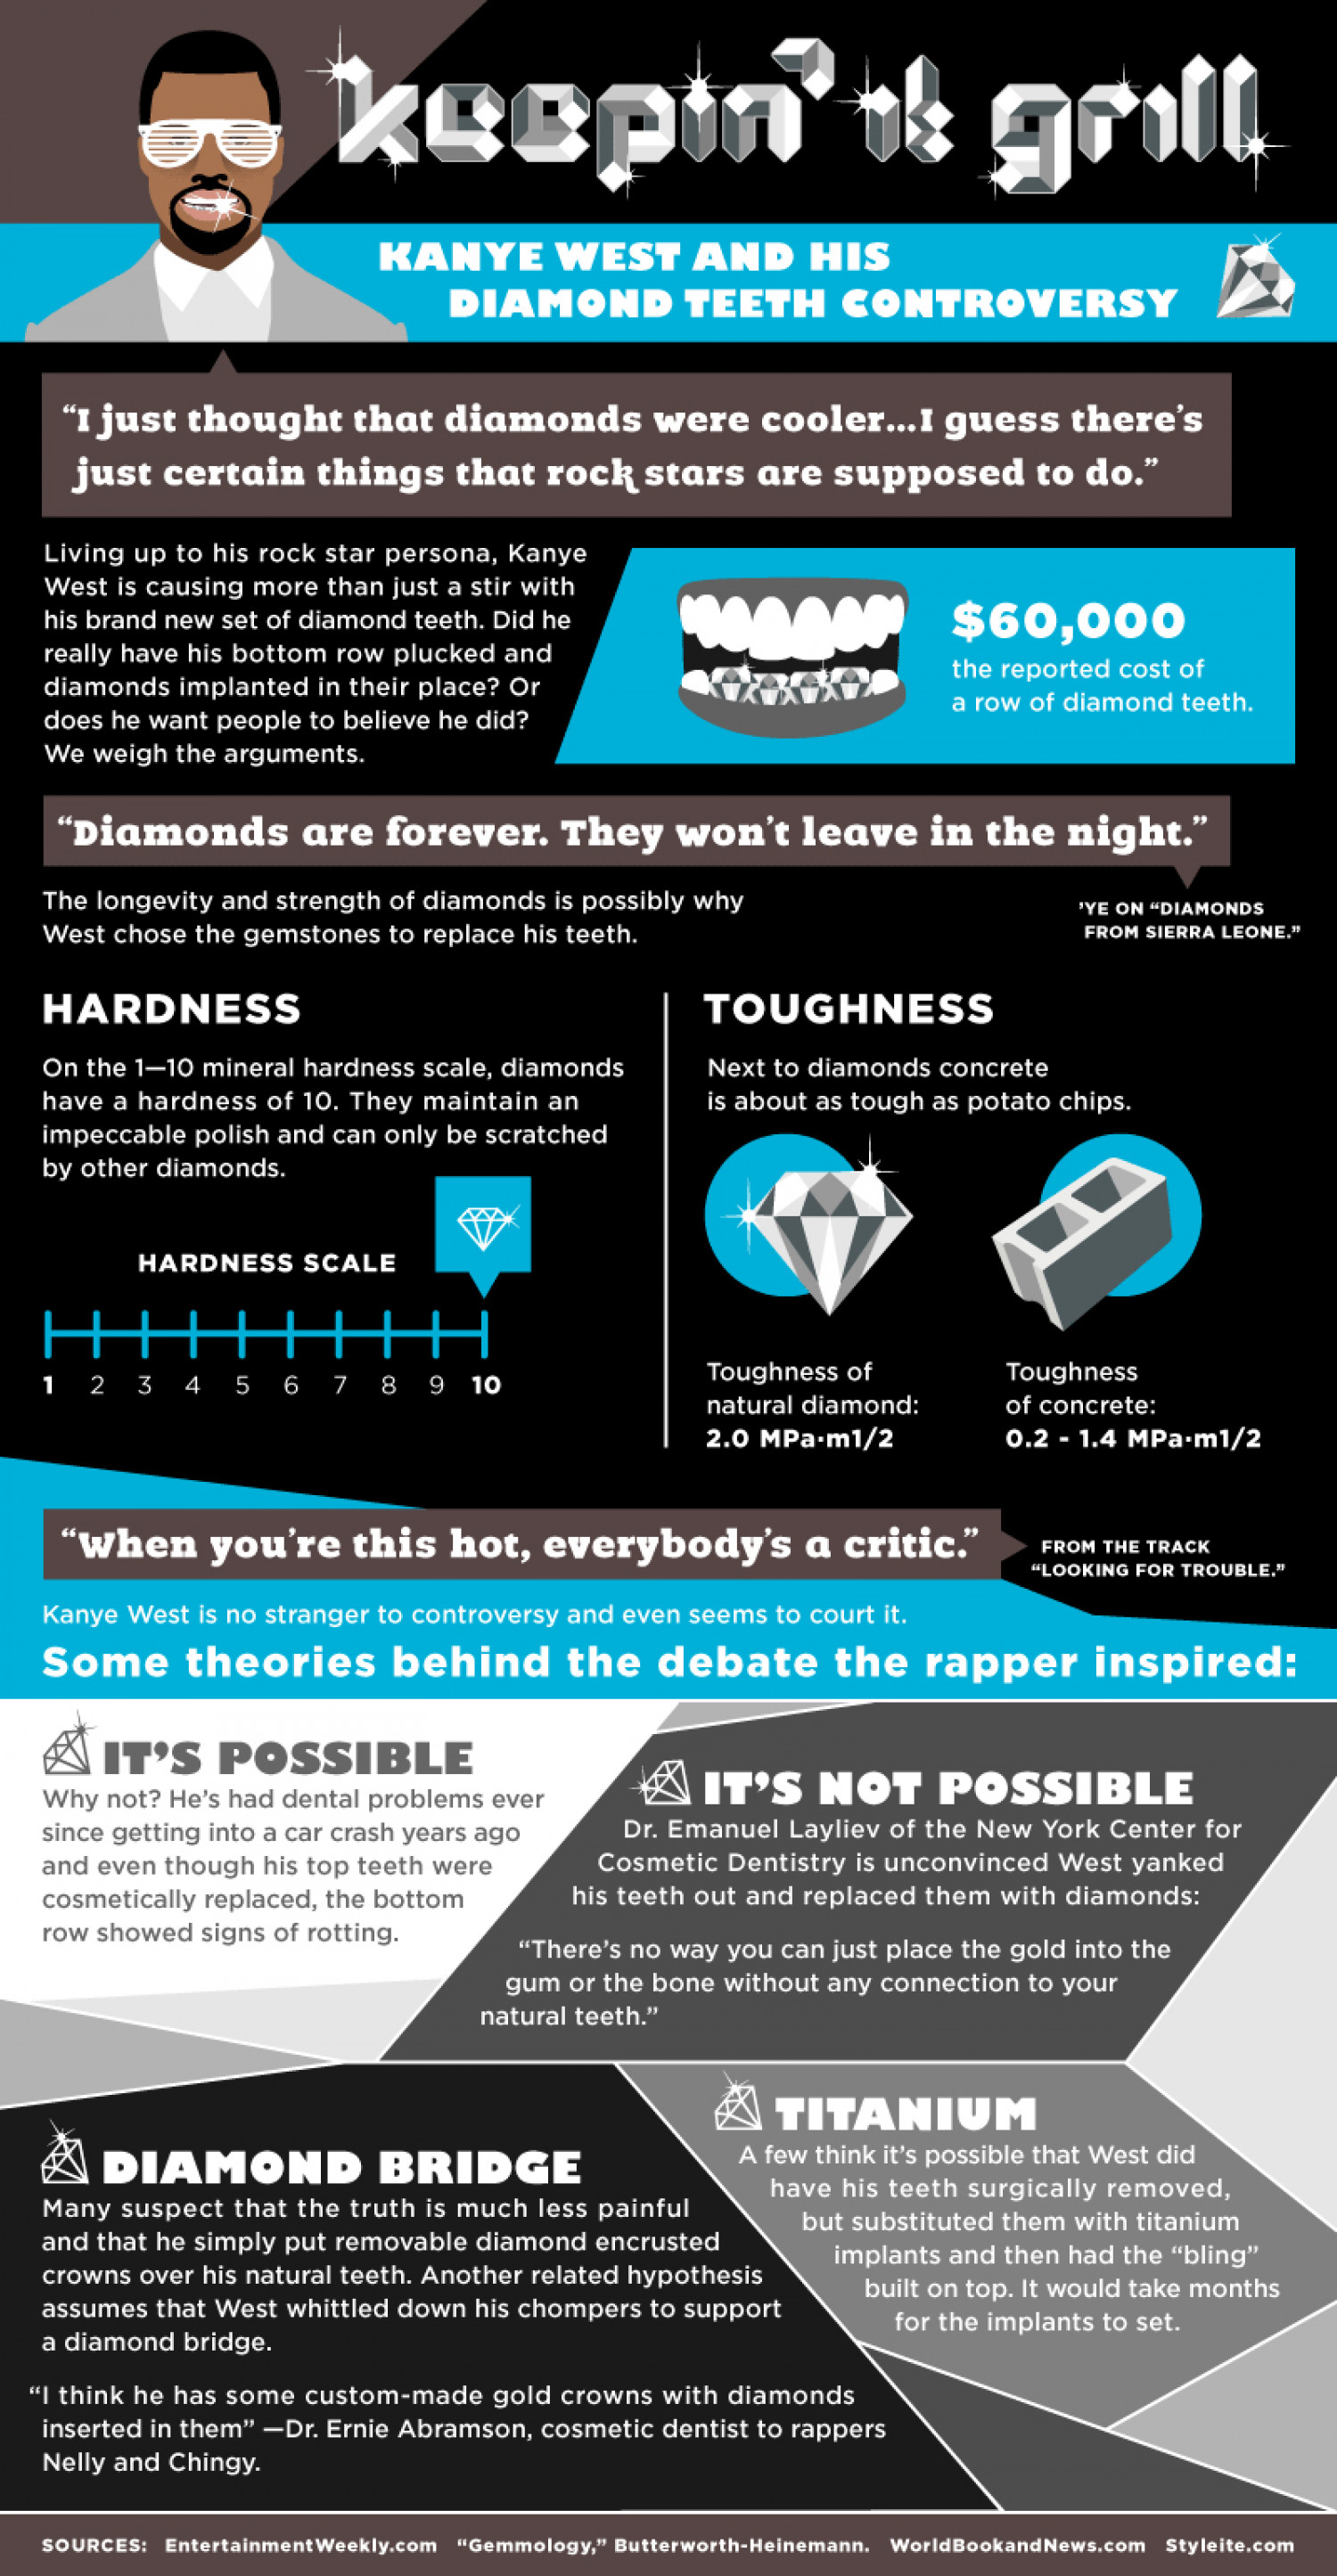 Keepin' it Grill: Kanye West's Diamond Teeth Controversy Infographic